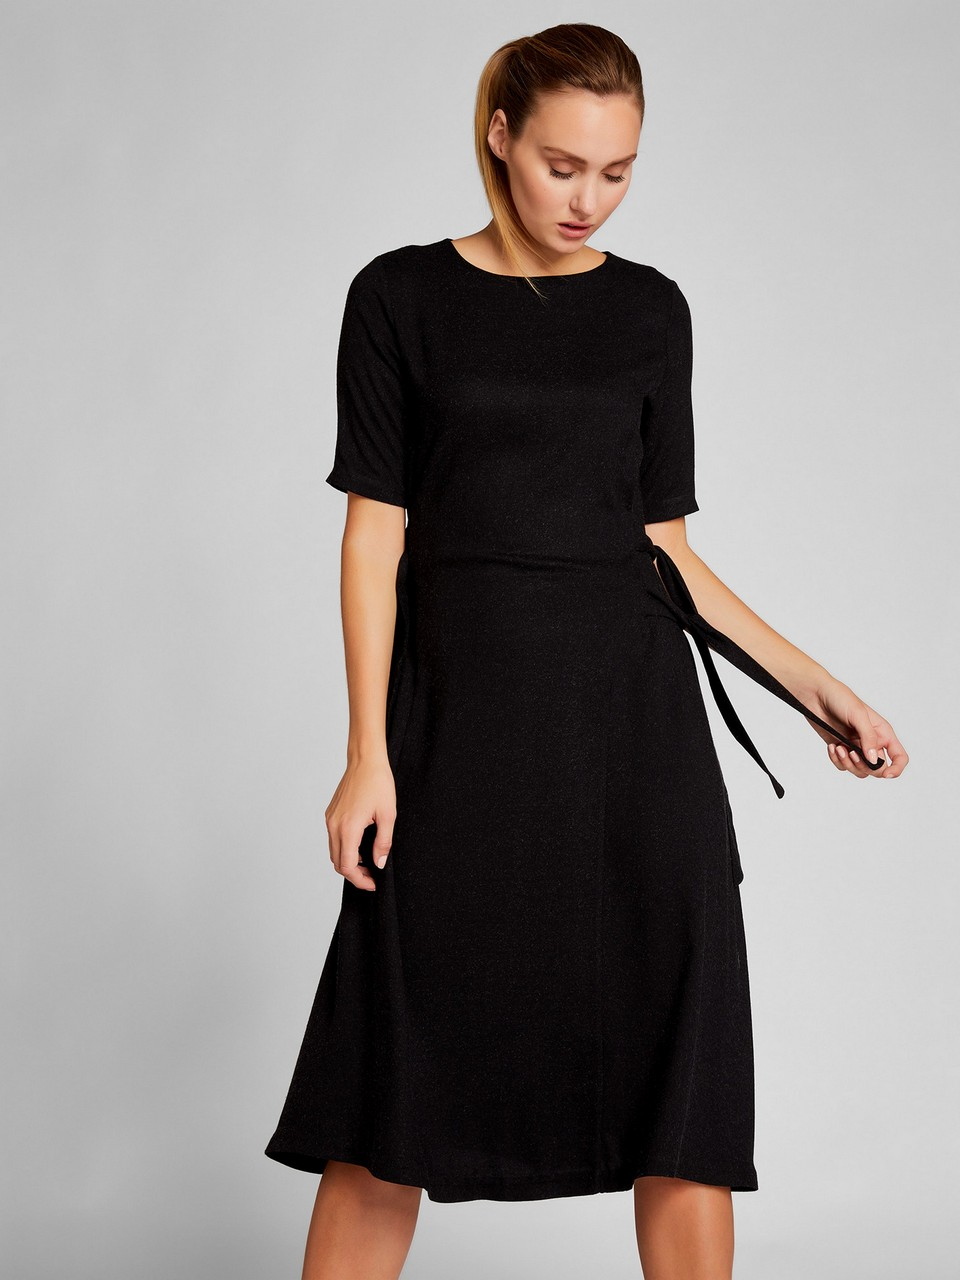 Gathered Waist Short Sleeve Dress